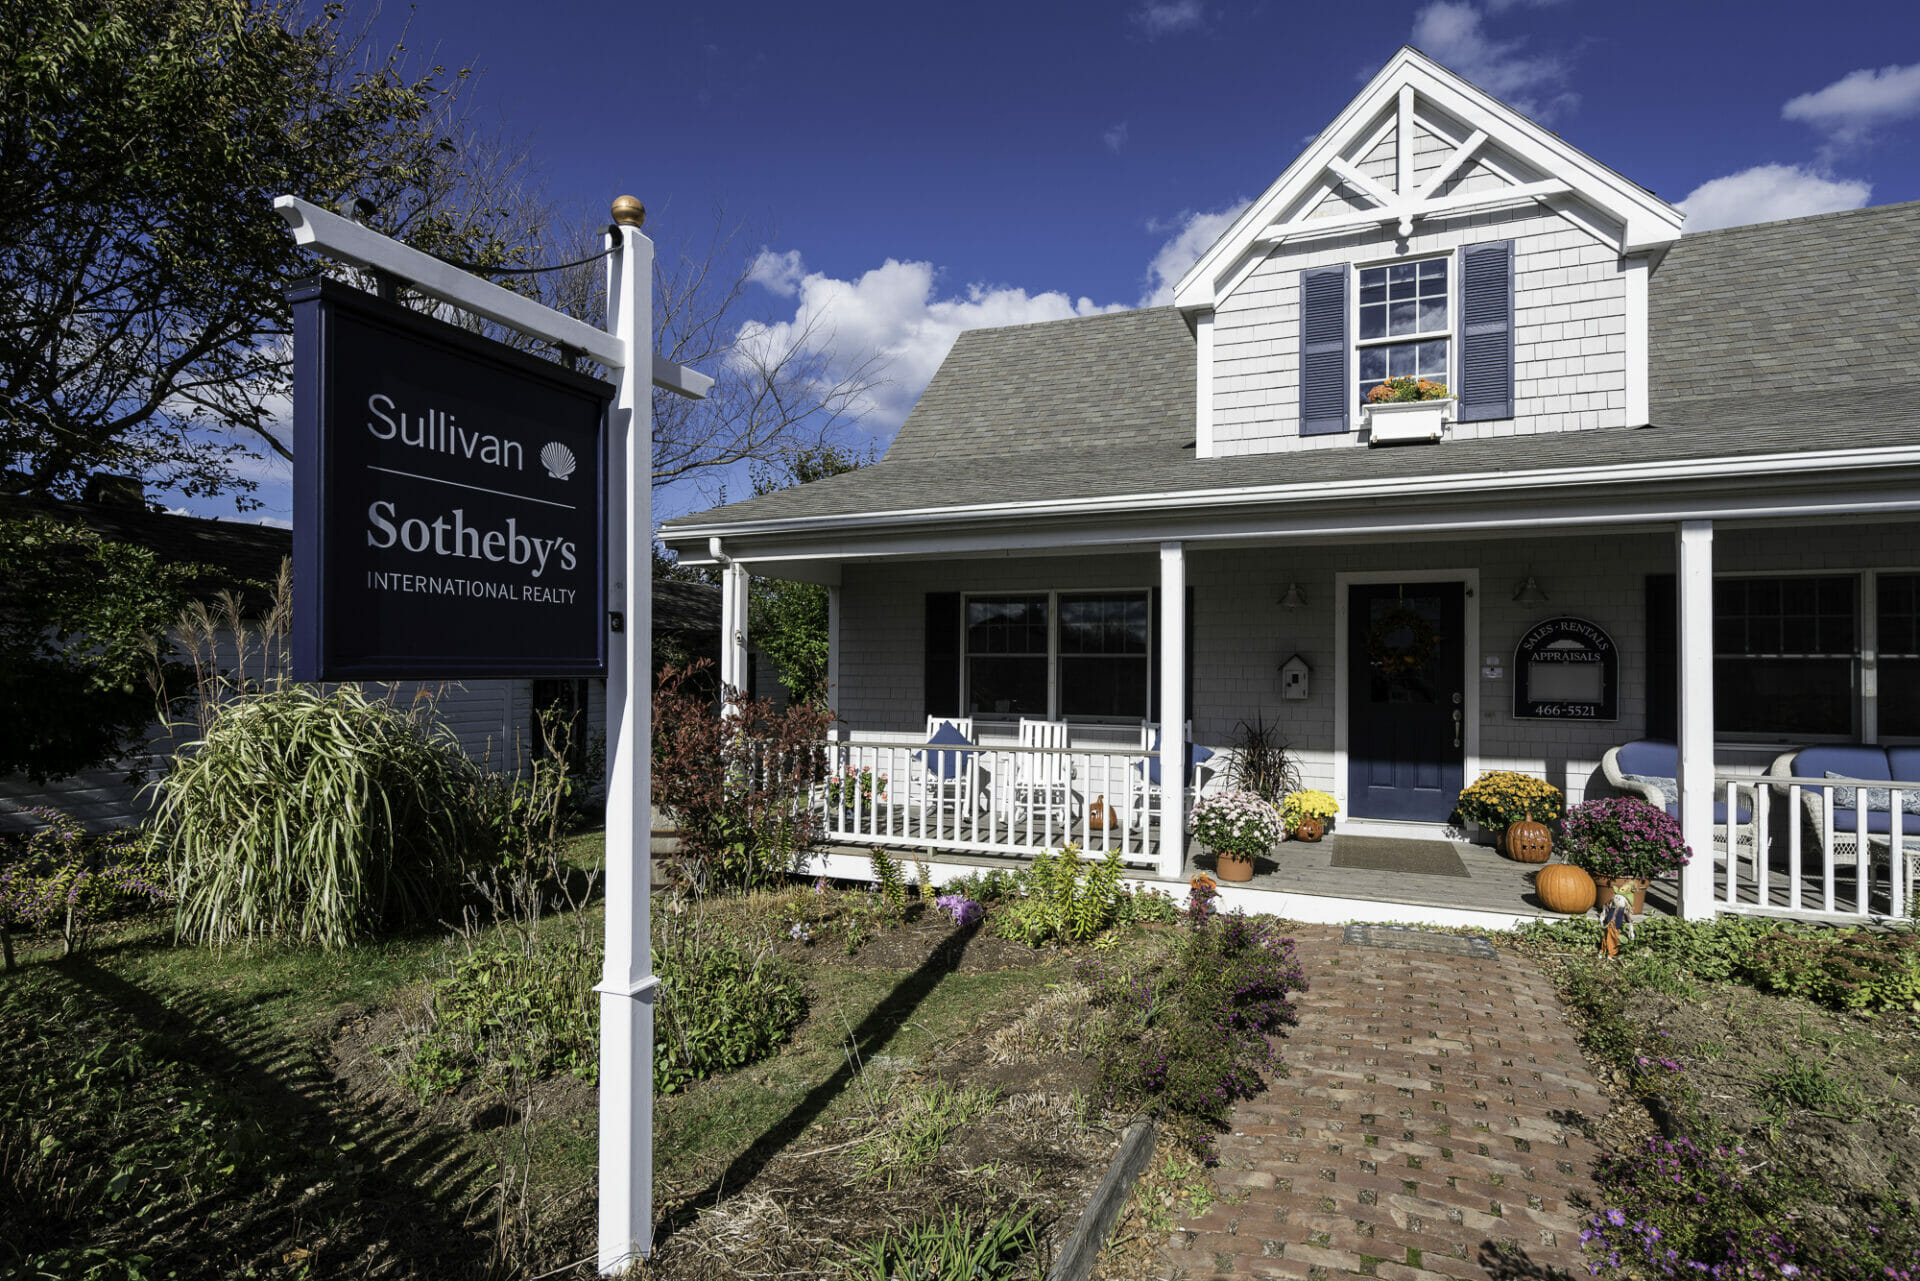 Home Sullivan Sothebys Real Estate